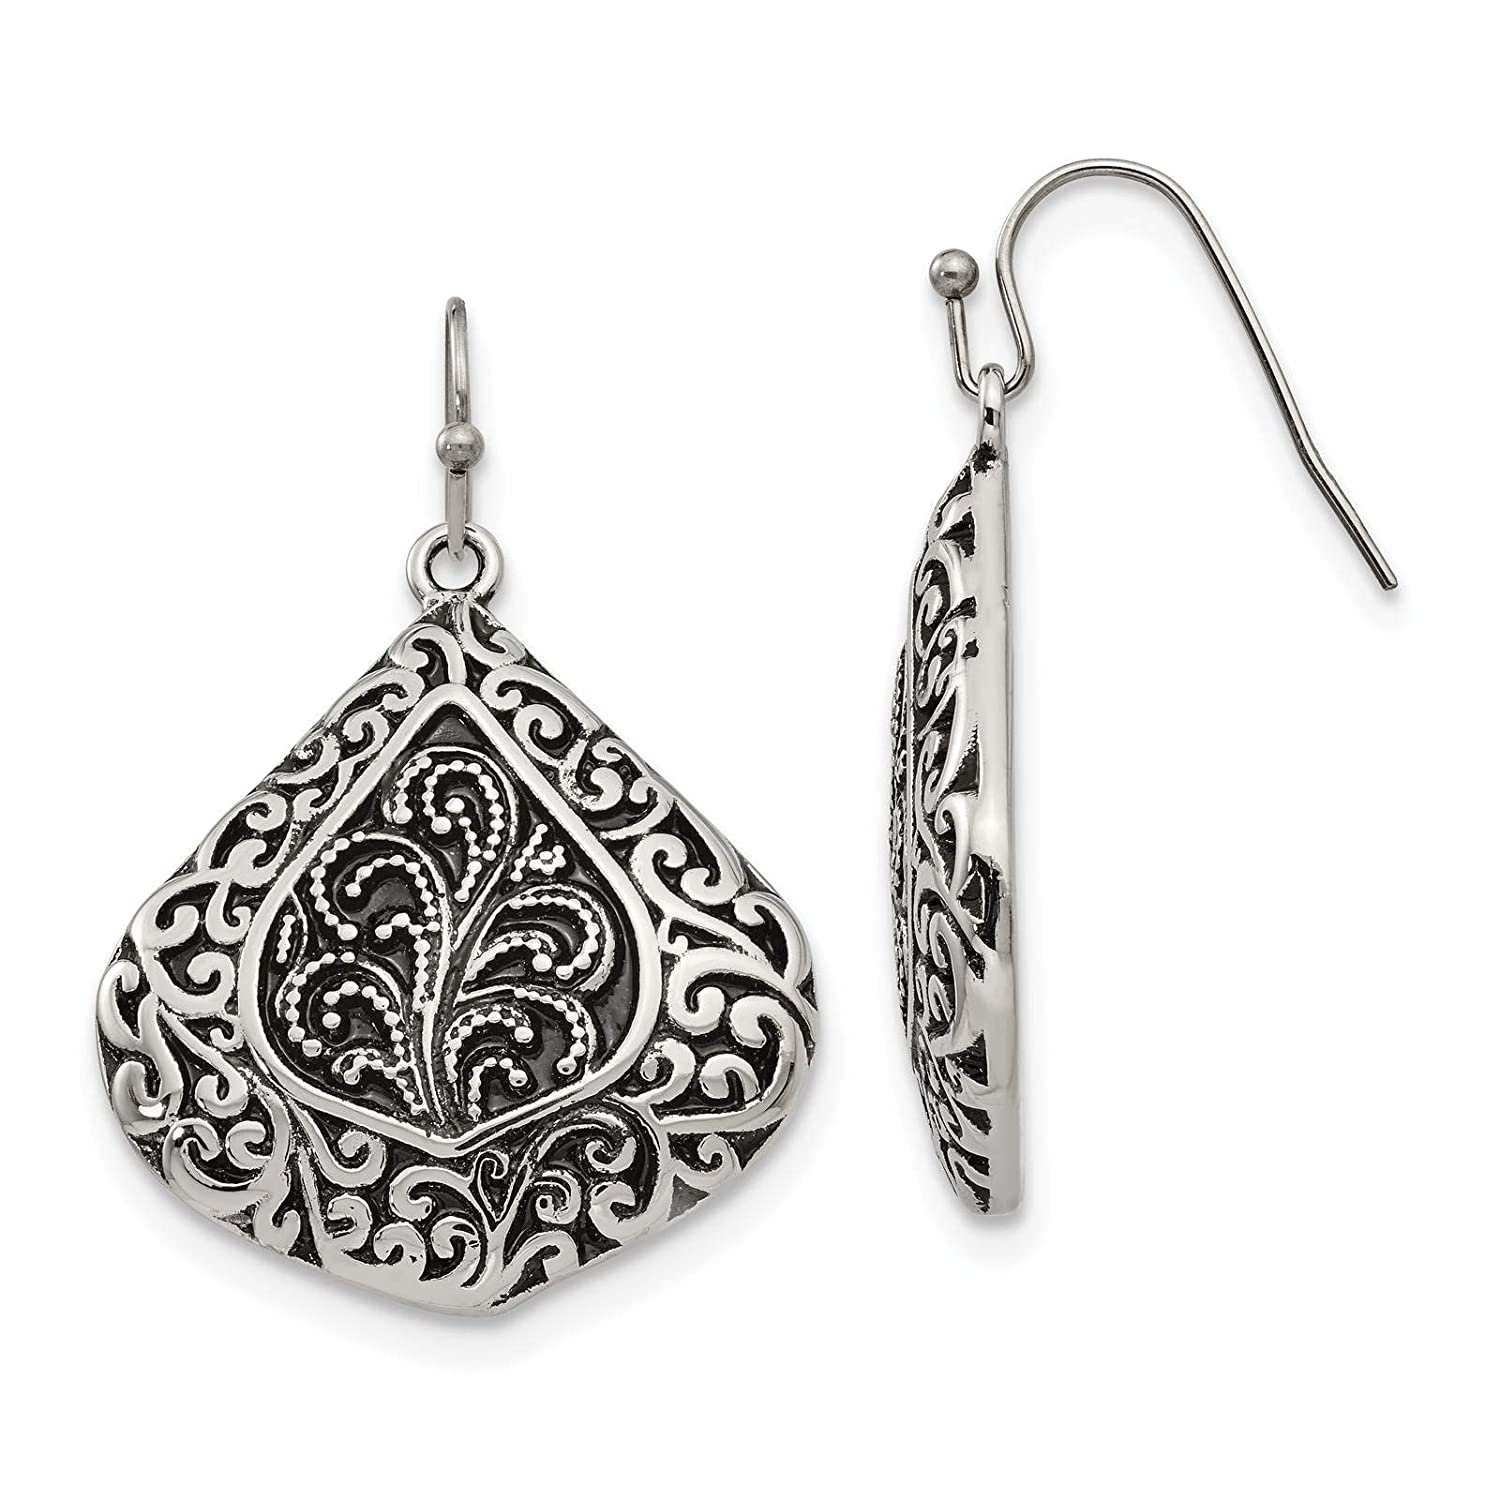 Stainless Steel Polished /& Antiqued Design Dangle Earrings